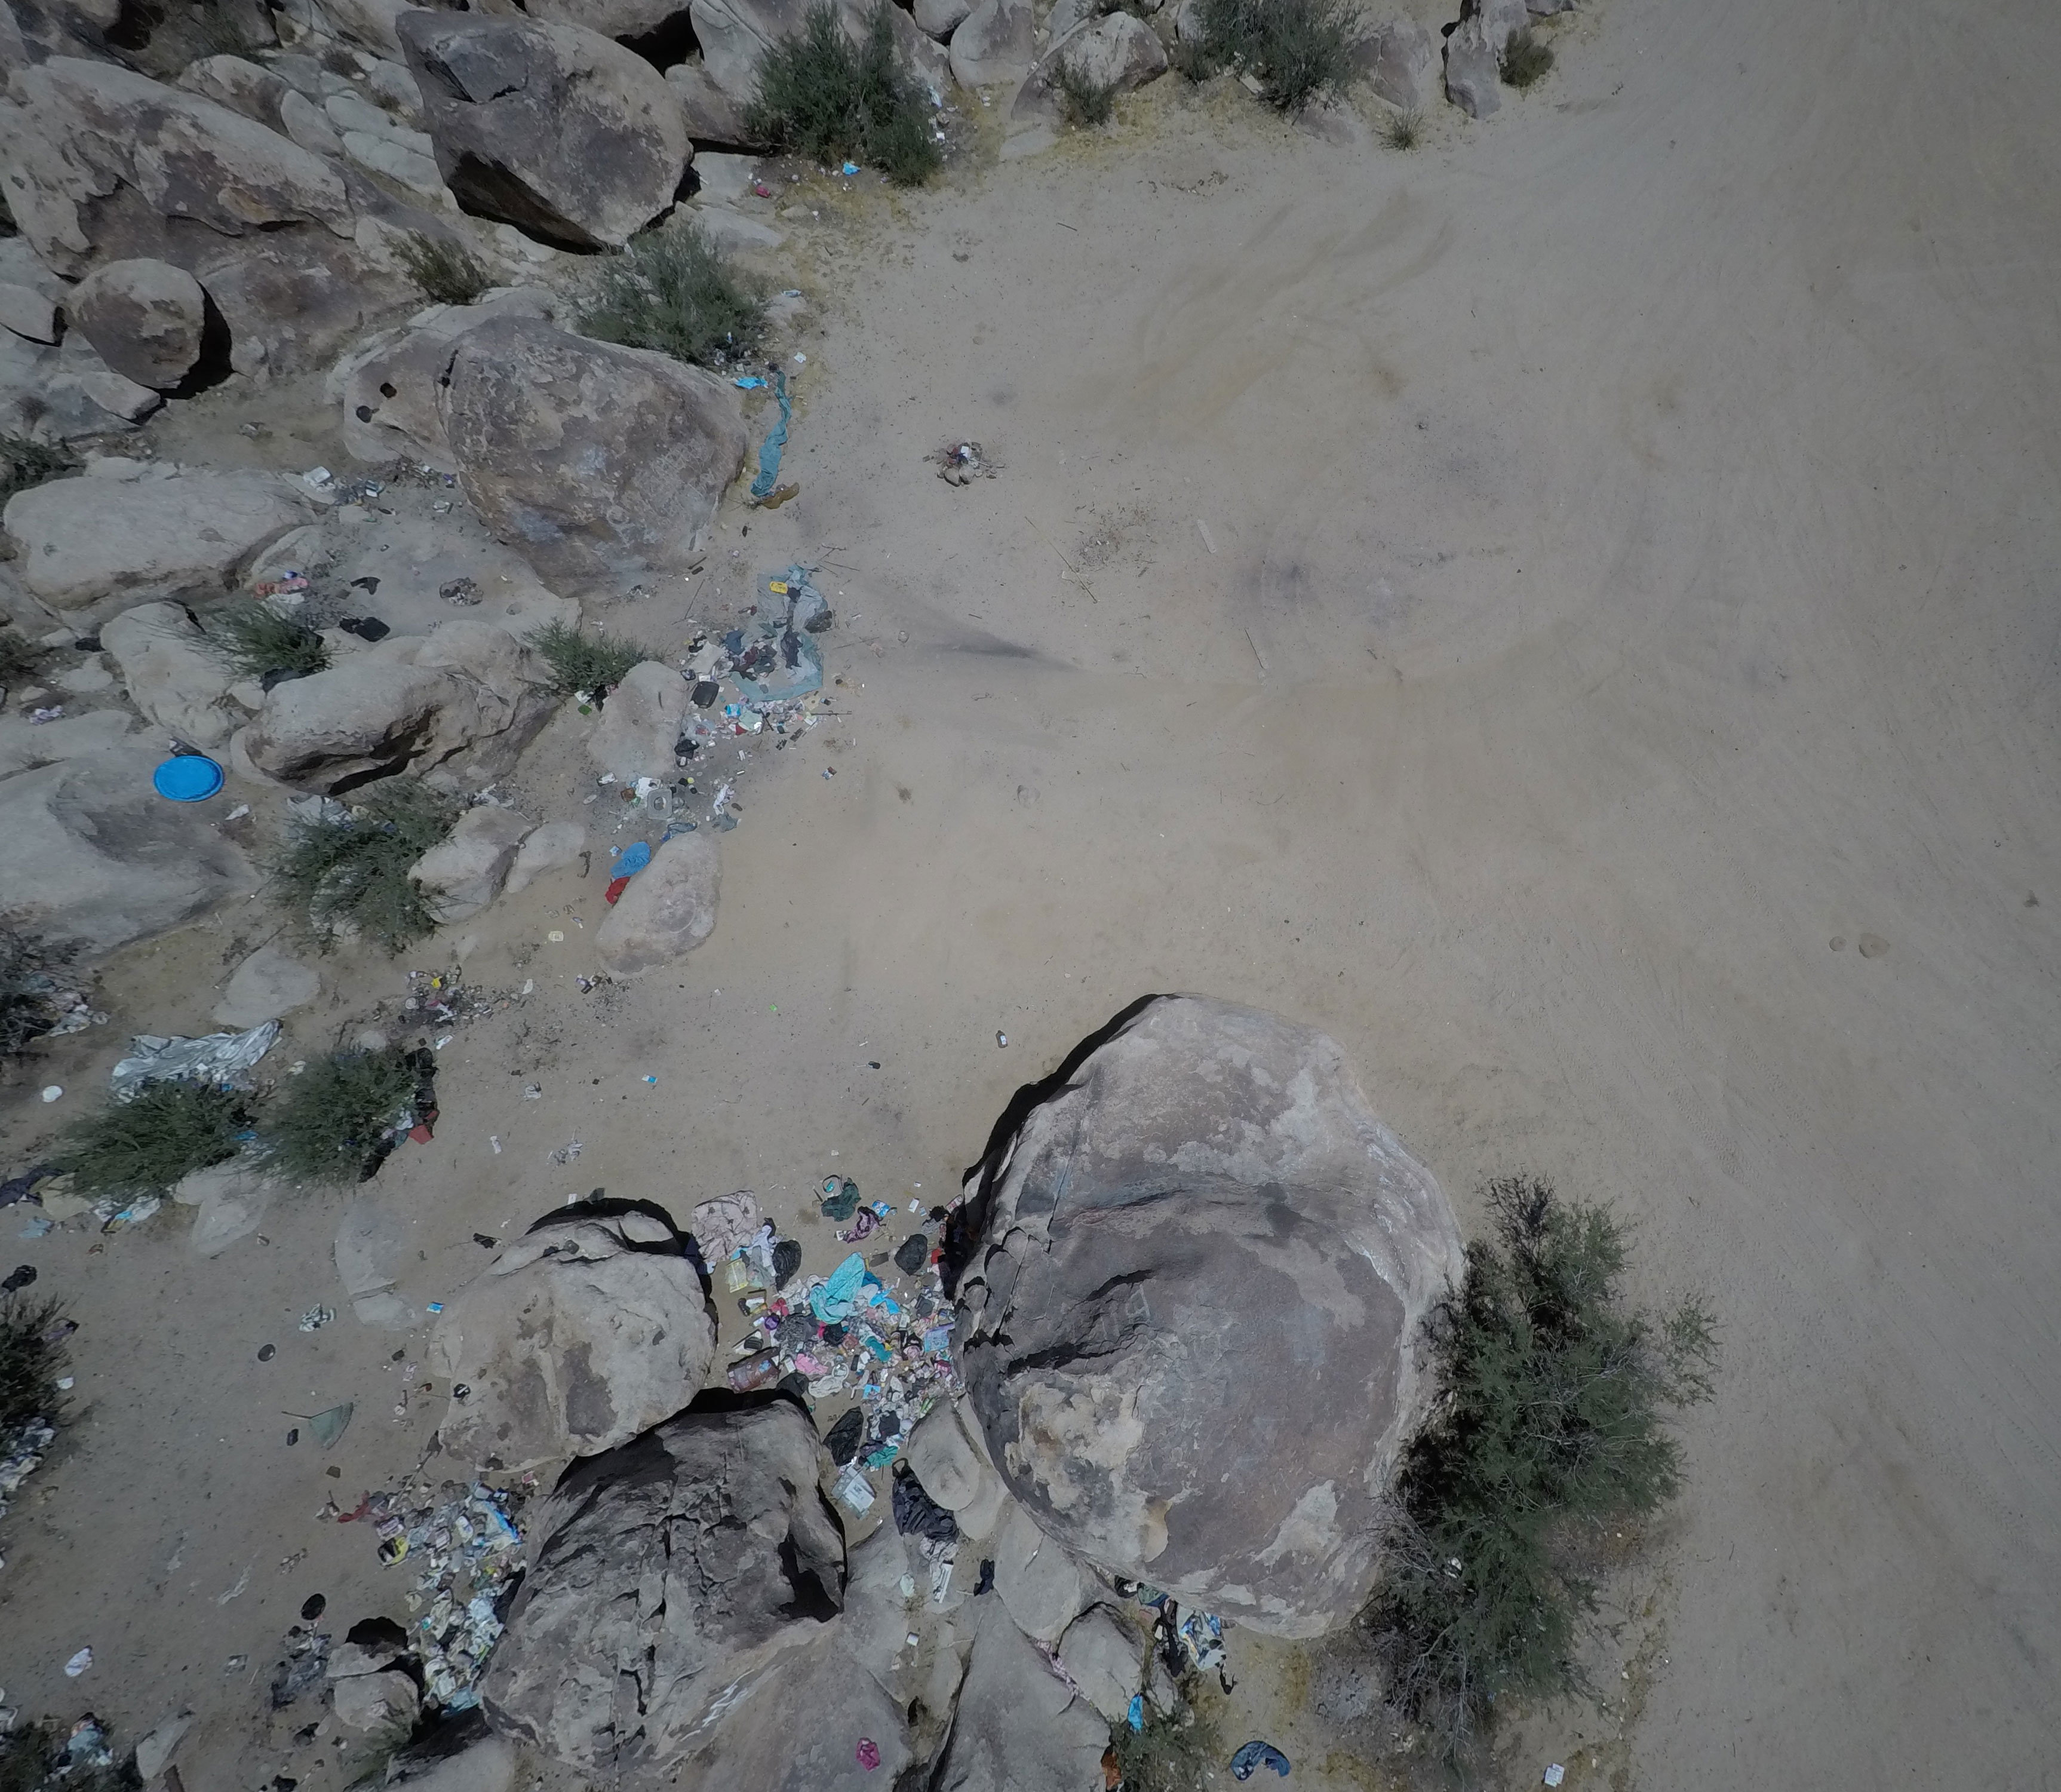 Overview of Abandoned Camp near Giant Rock